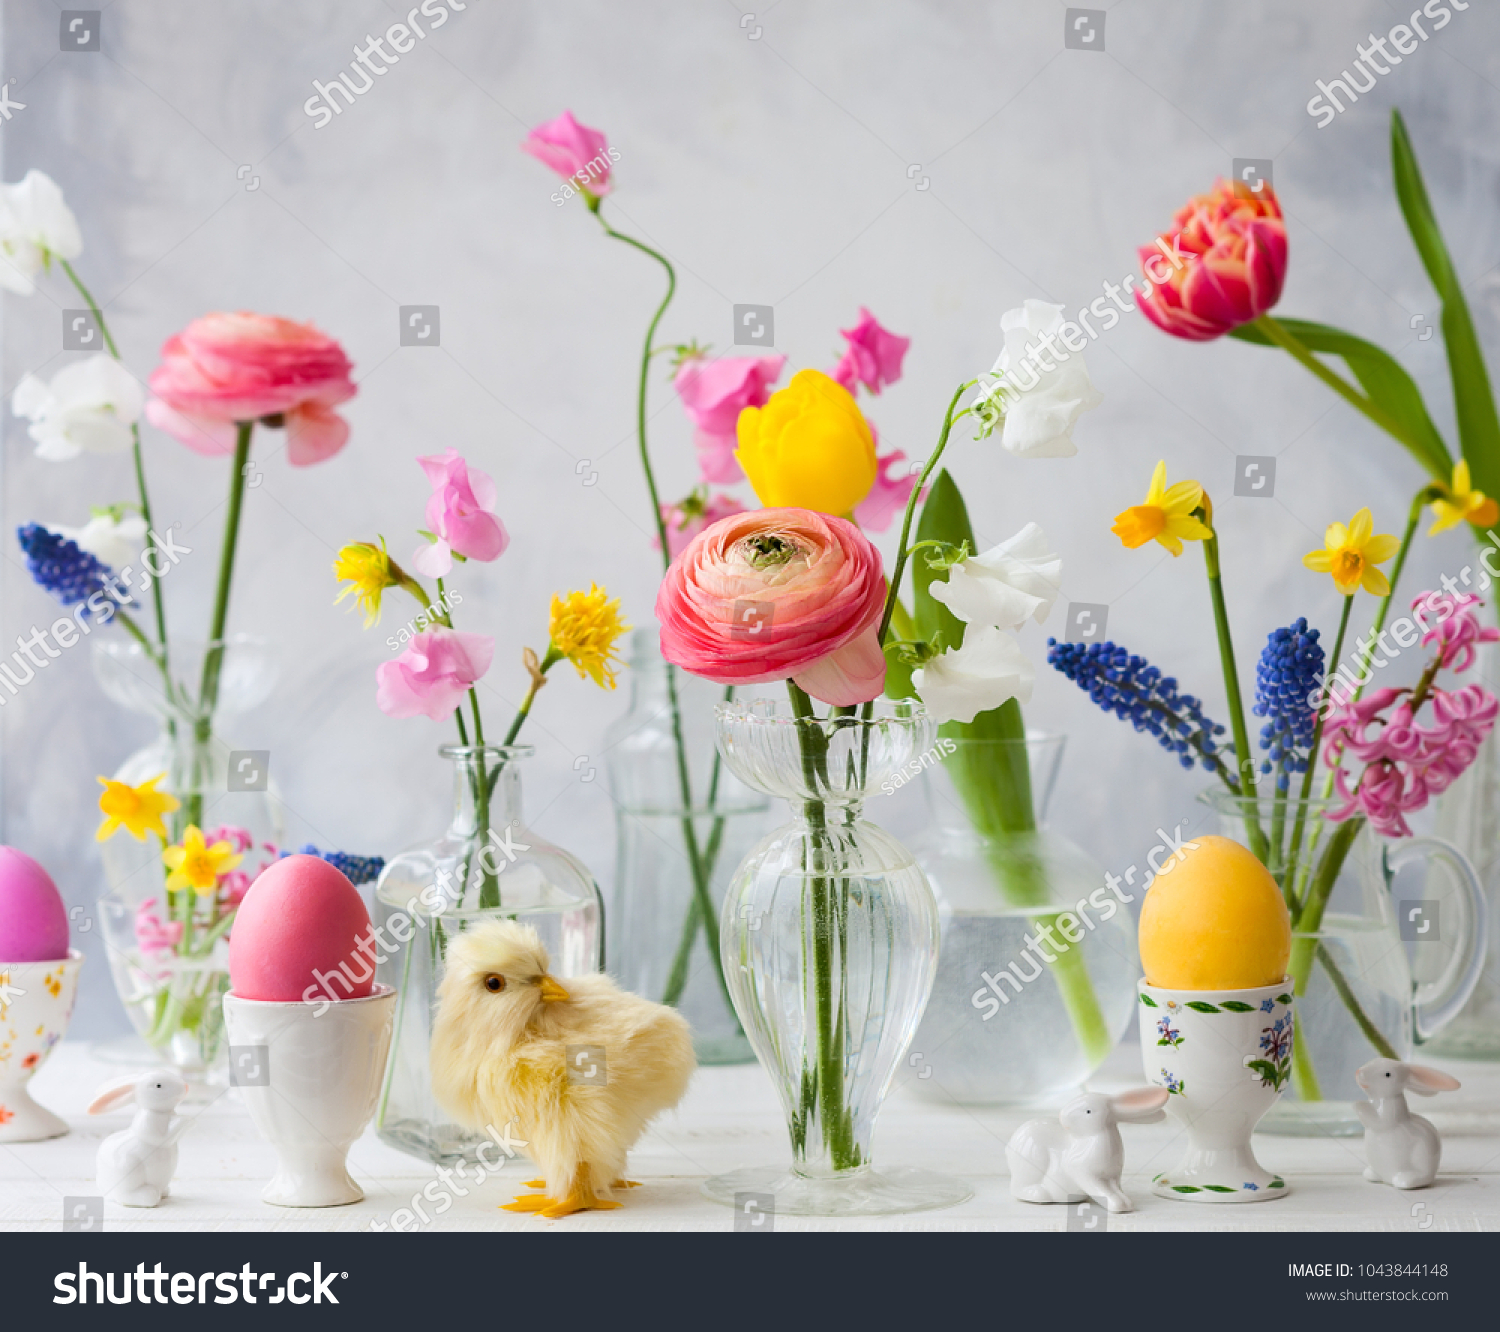 Beautiful Flowers Bouquets Glass Vases On Stock Photo (Safe to Use ...